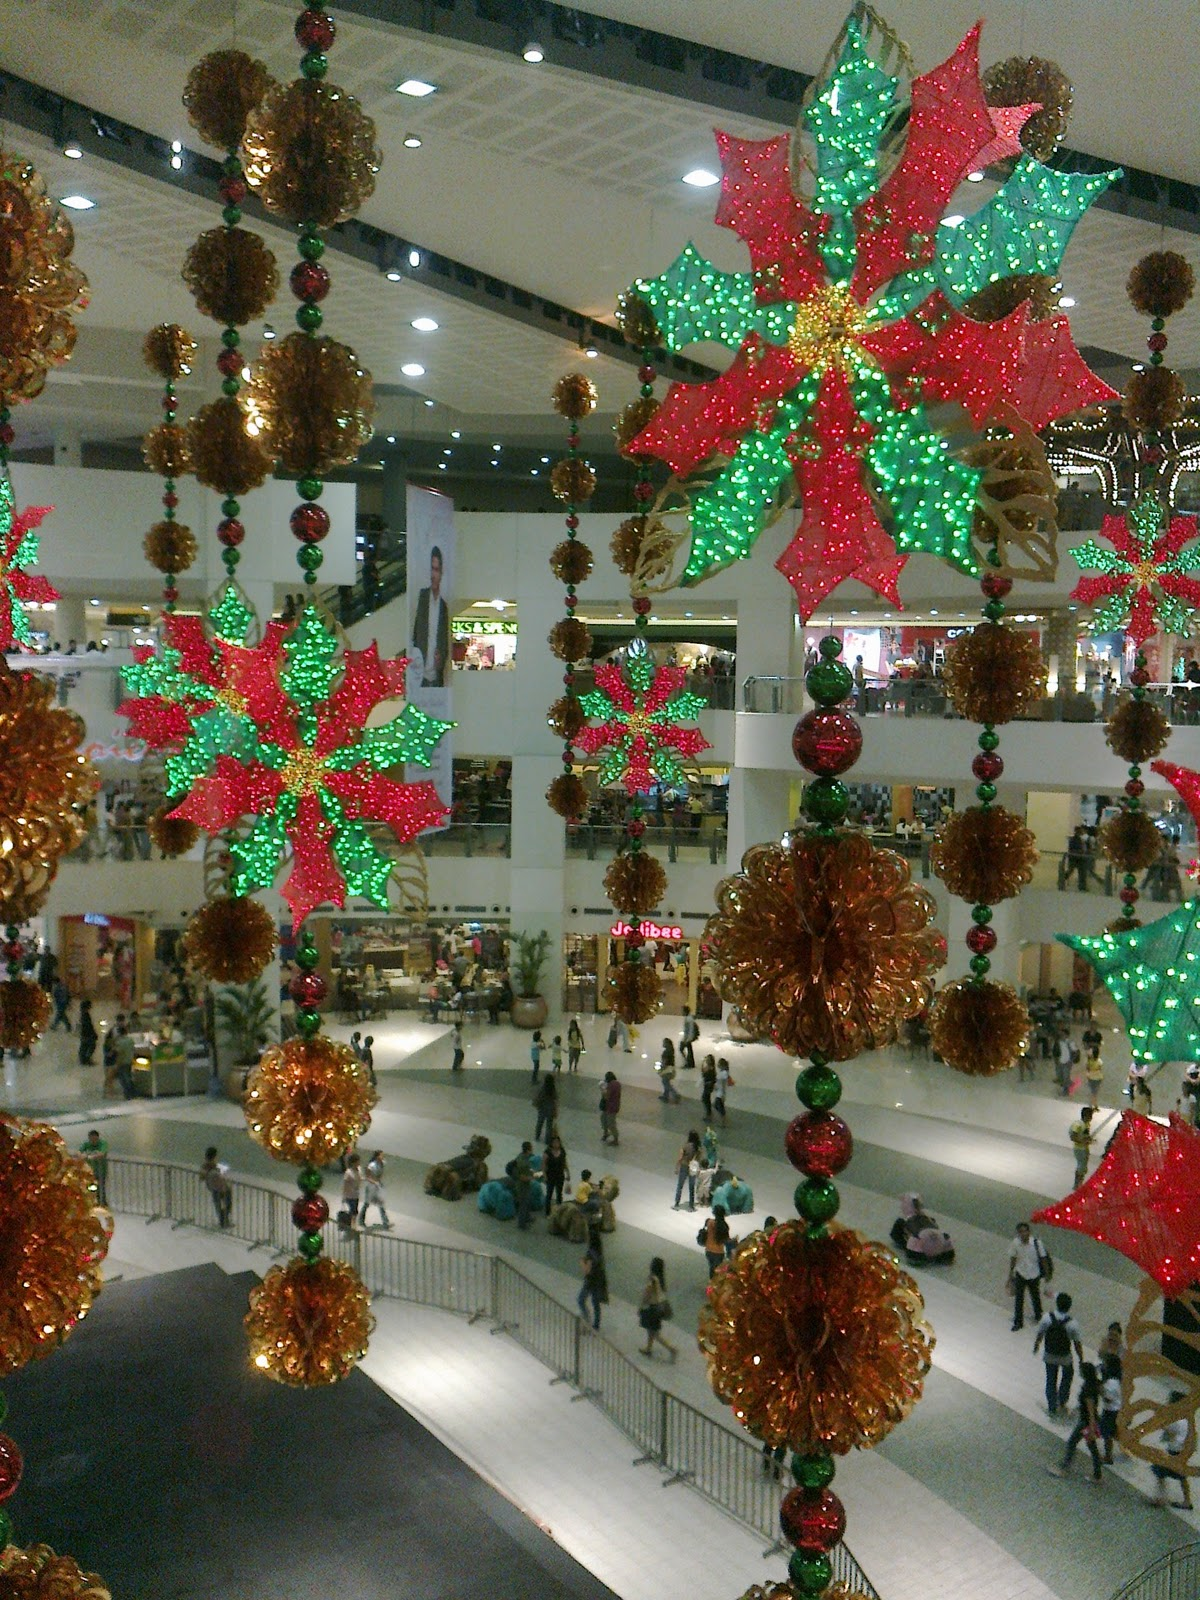 The Christmas Decorations Of Scant Christmas Decorations In Shopping Malls Before The